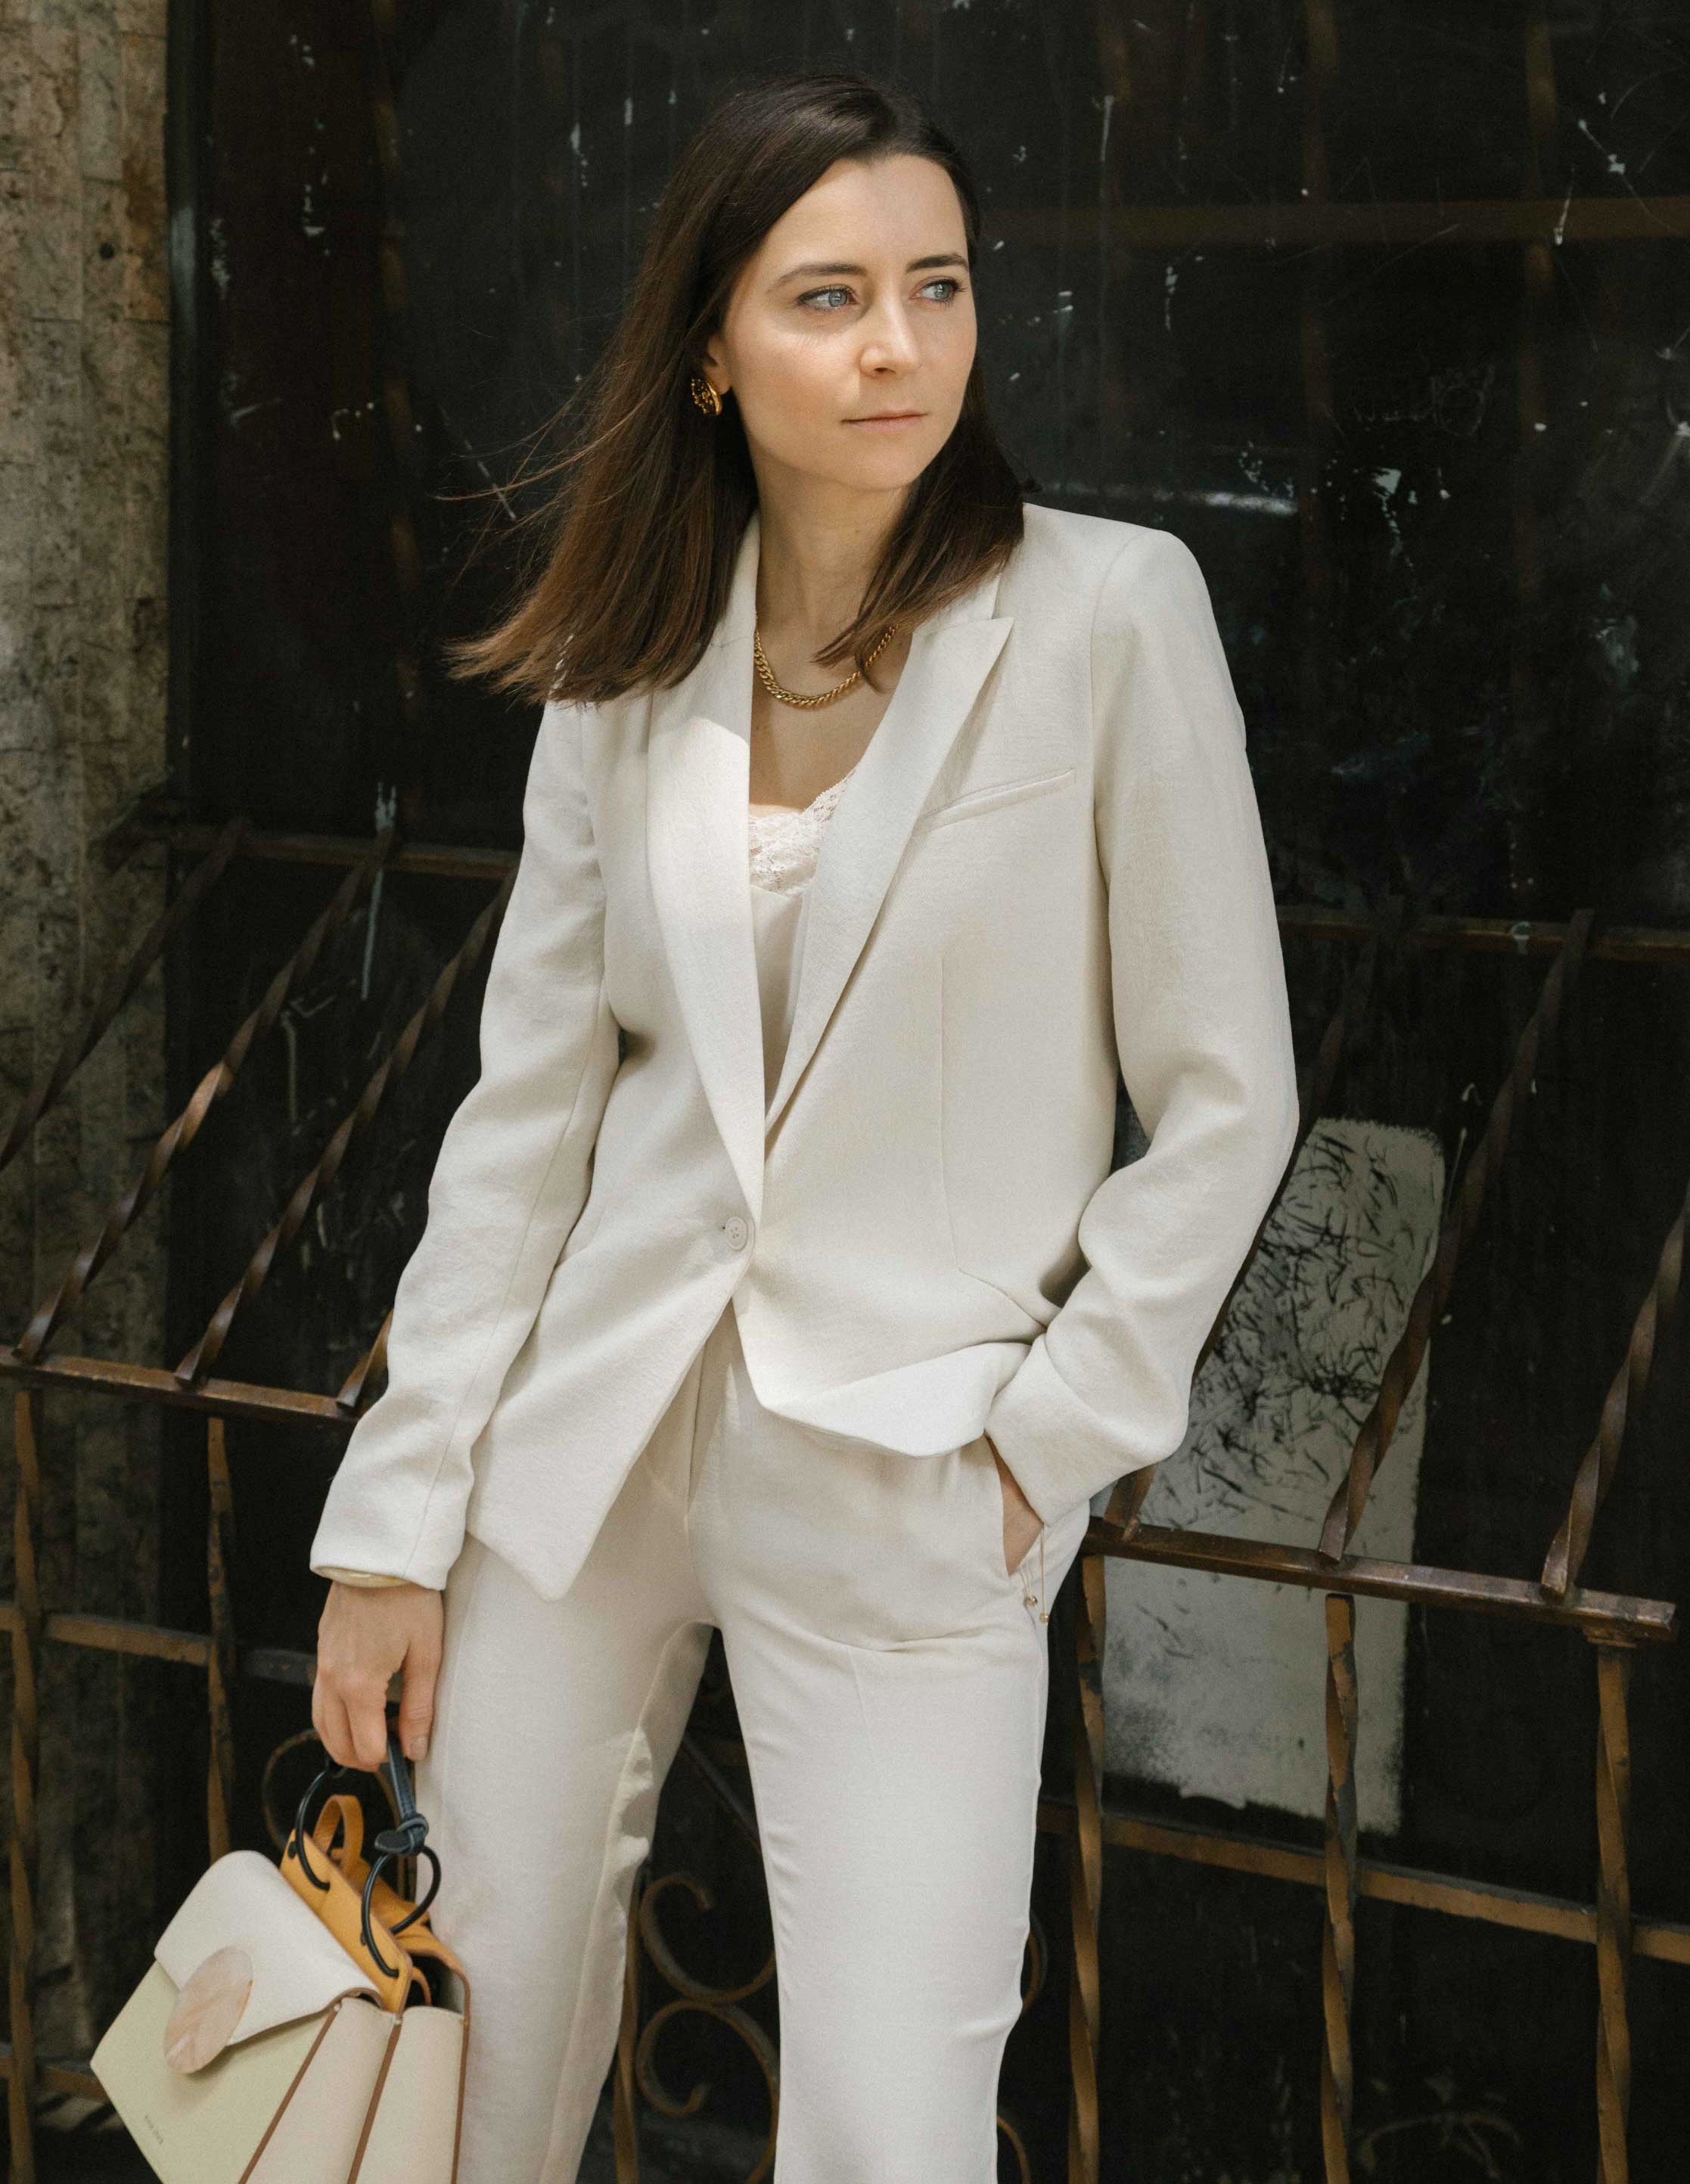 How to wear the white suit for women. White party outfit ideas and summer outfit ideas are on Modersvp.com. White suit from Ba&Sh Paris worn by Julia Comil Bracelet Lizzie Fortunato